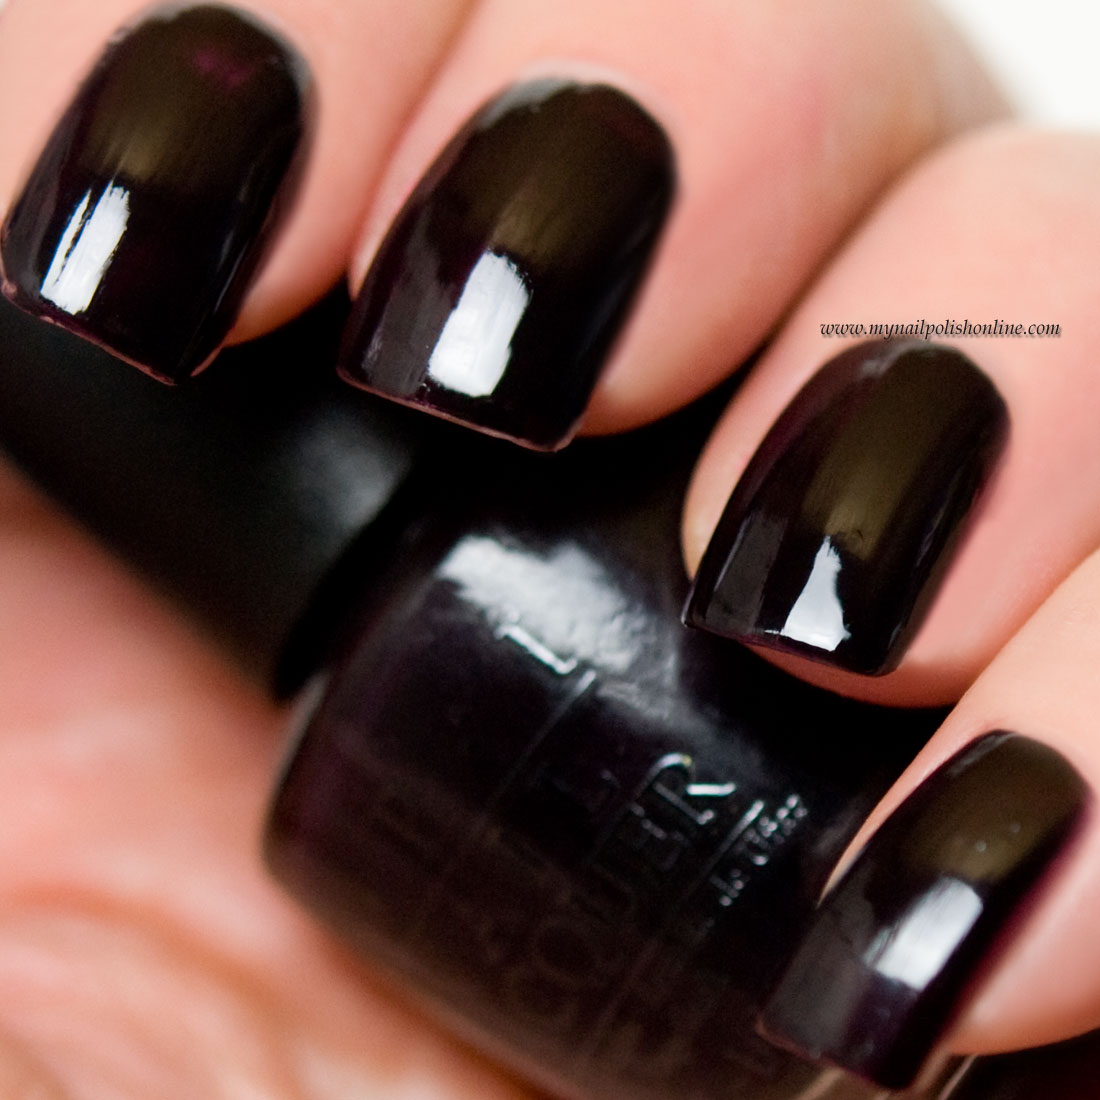 OPI - Lincon Park After Dark - My Nail Polish Online